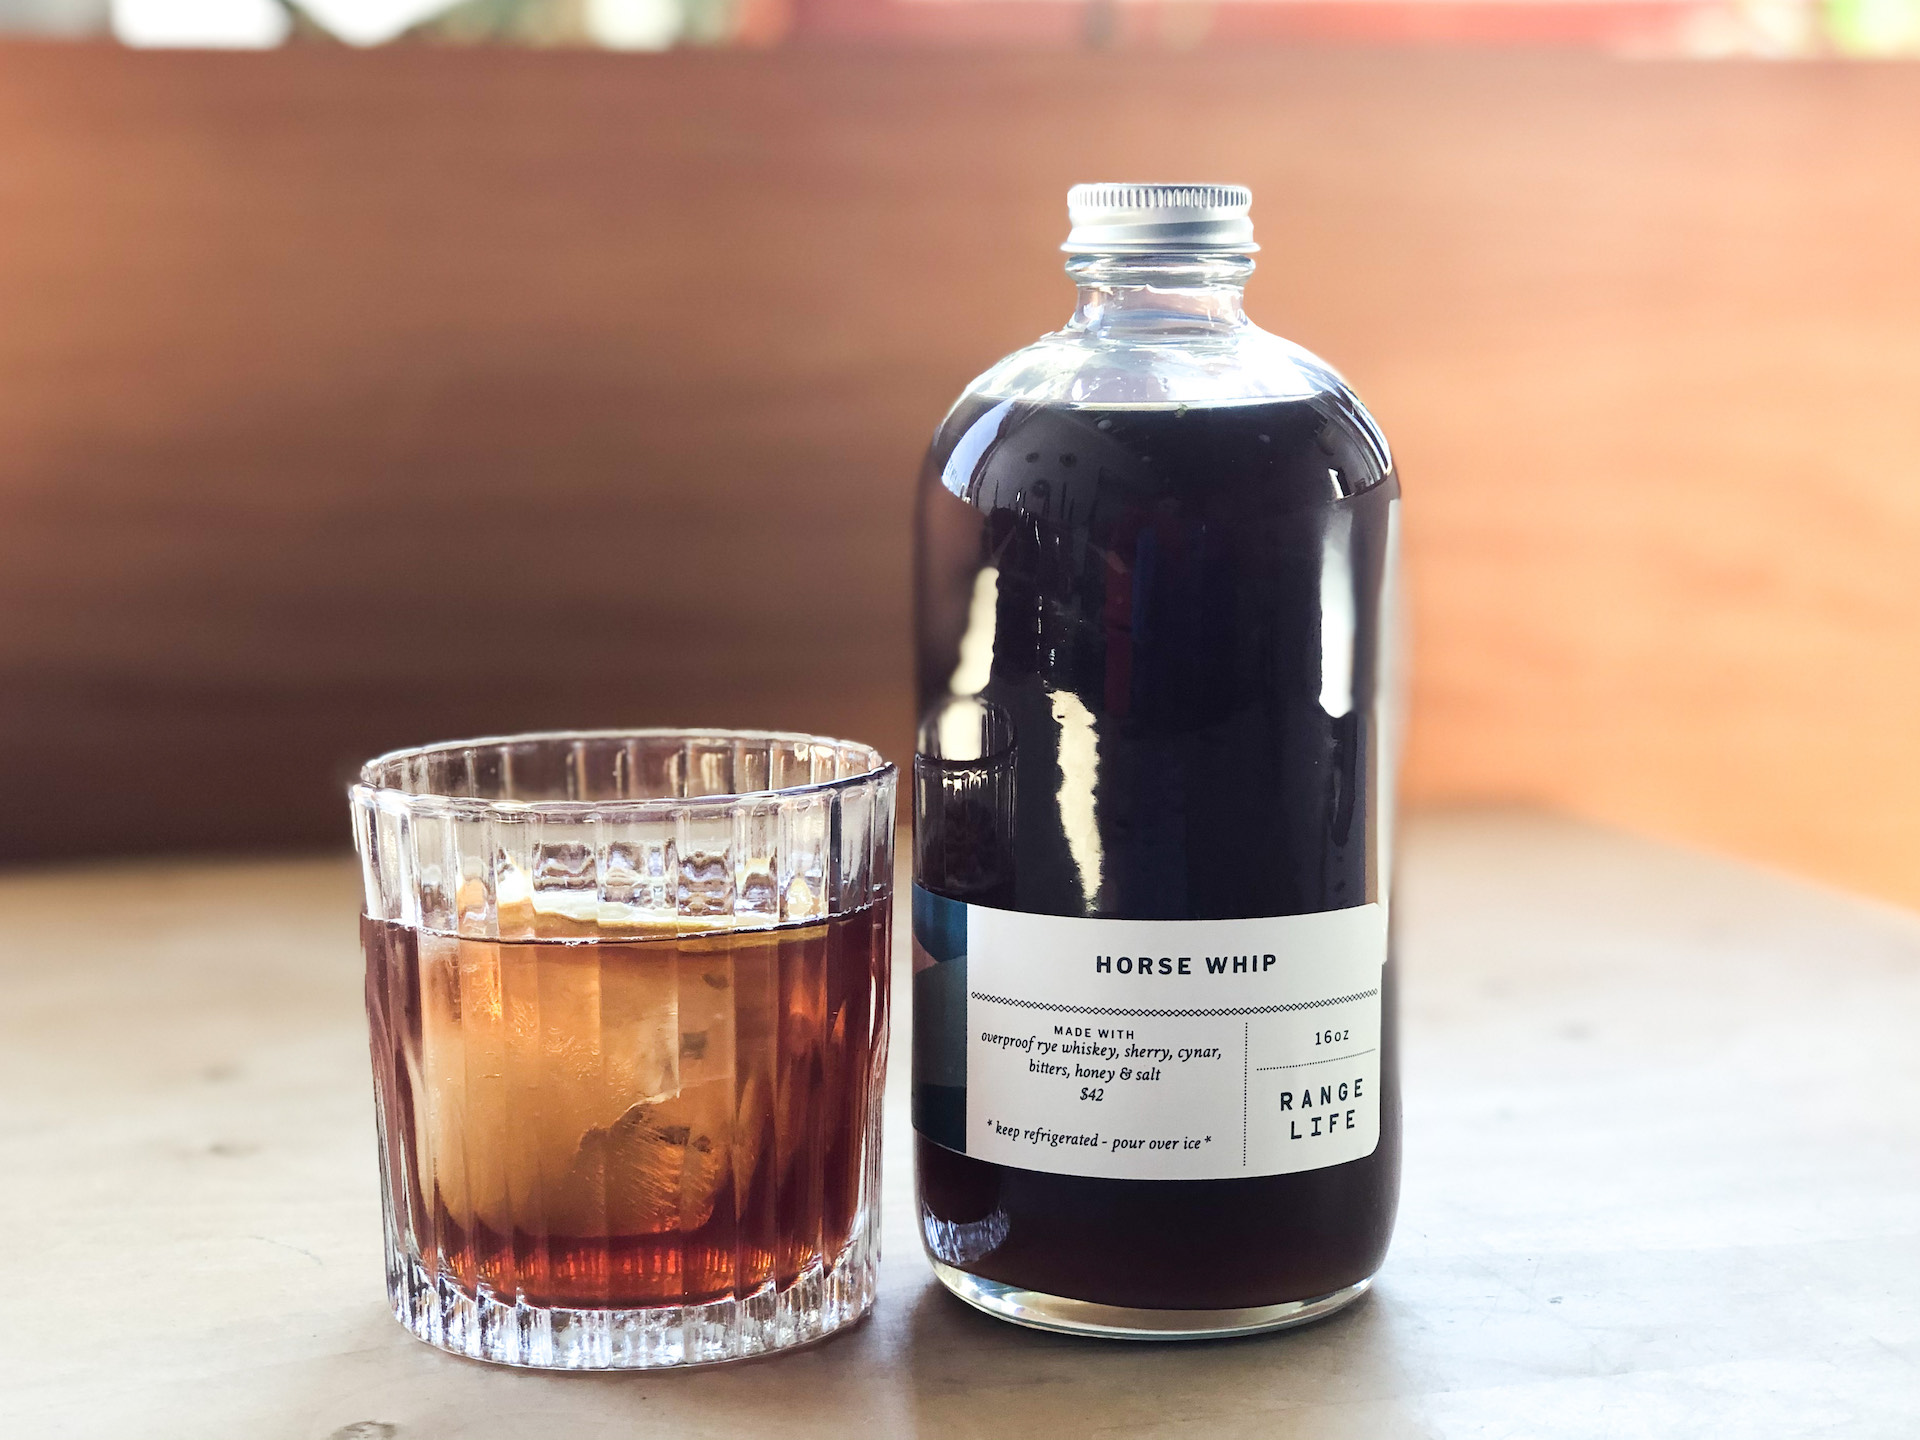 Range Life is offering takeout cocktail mixes including this boozy, butterscotch-laced slow sipper aptly titled Horse Whip.